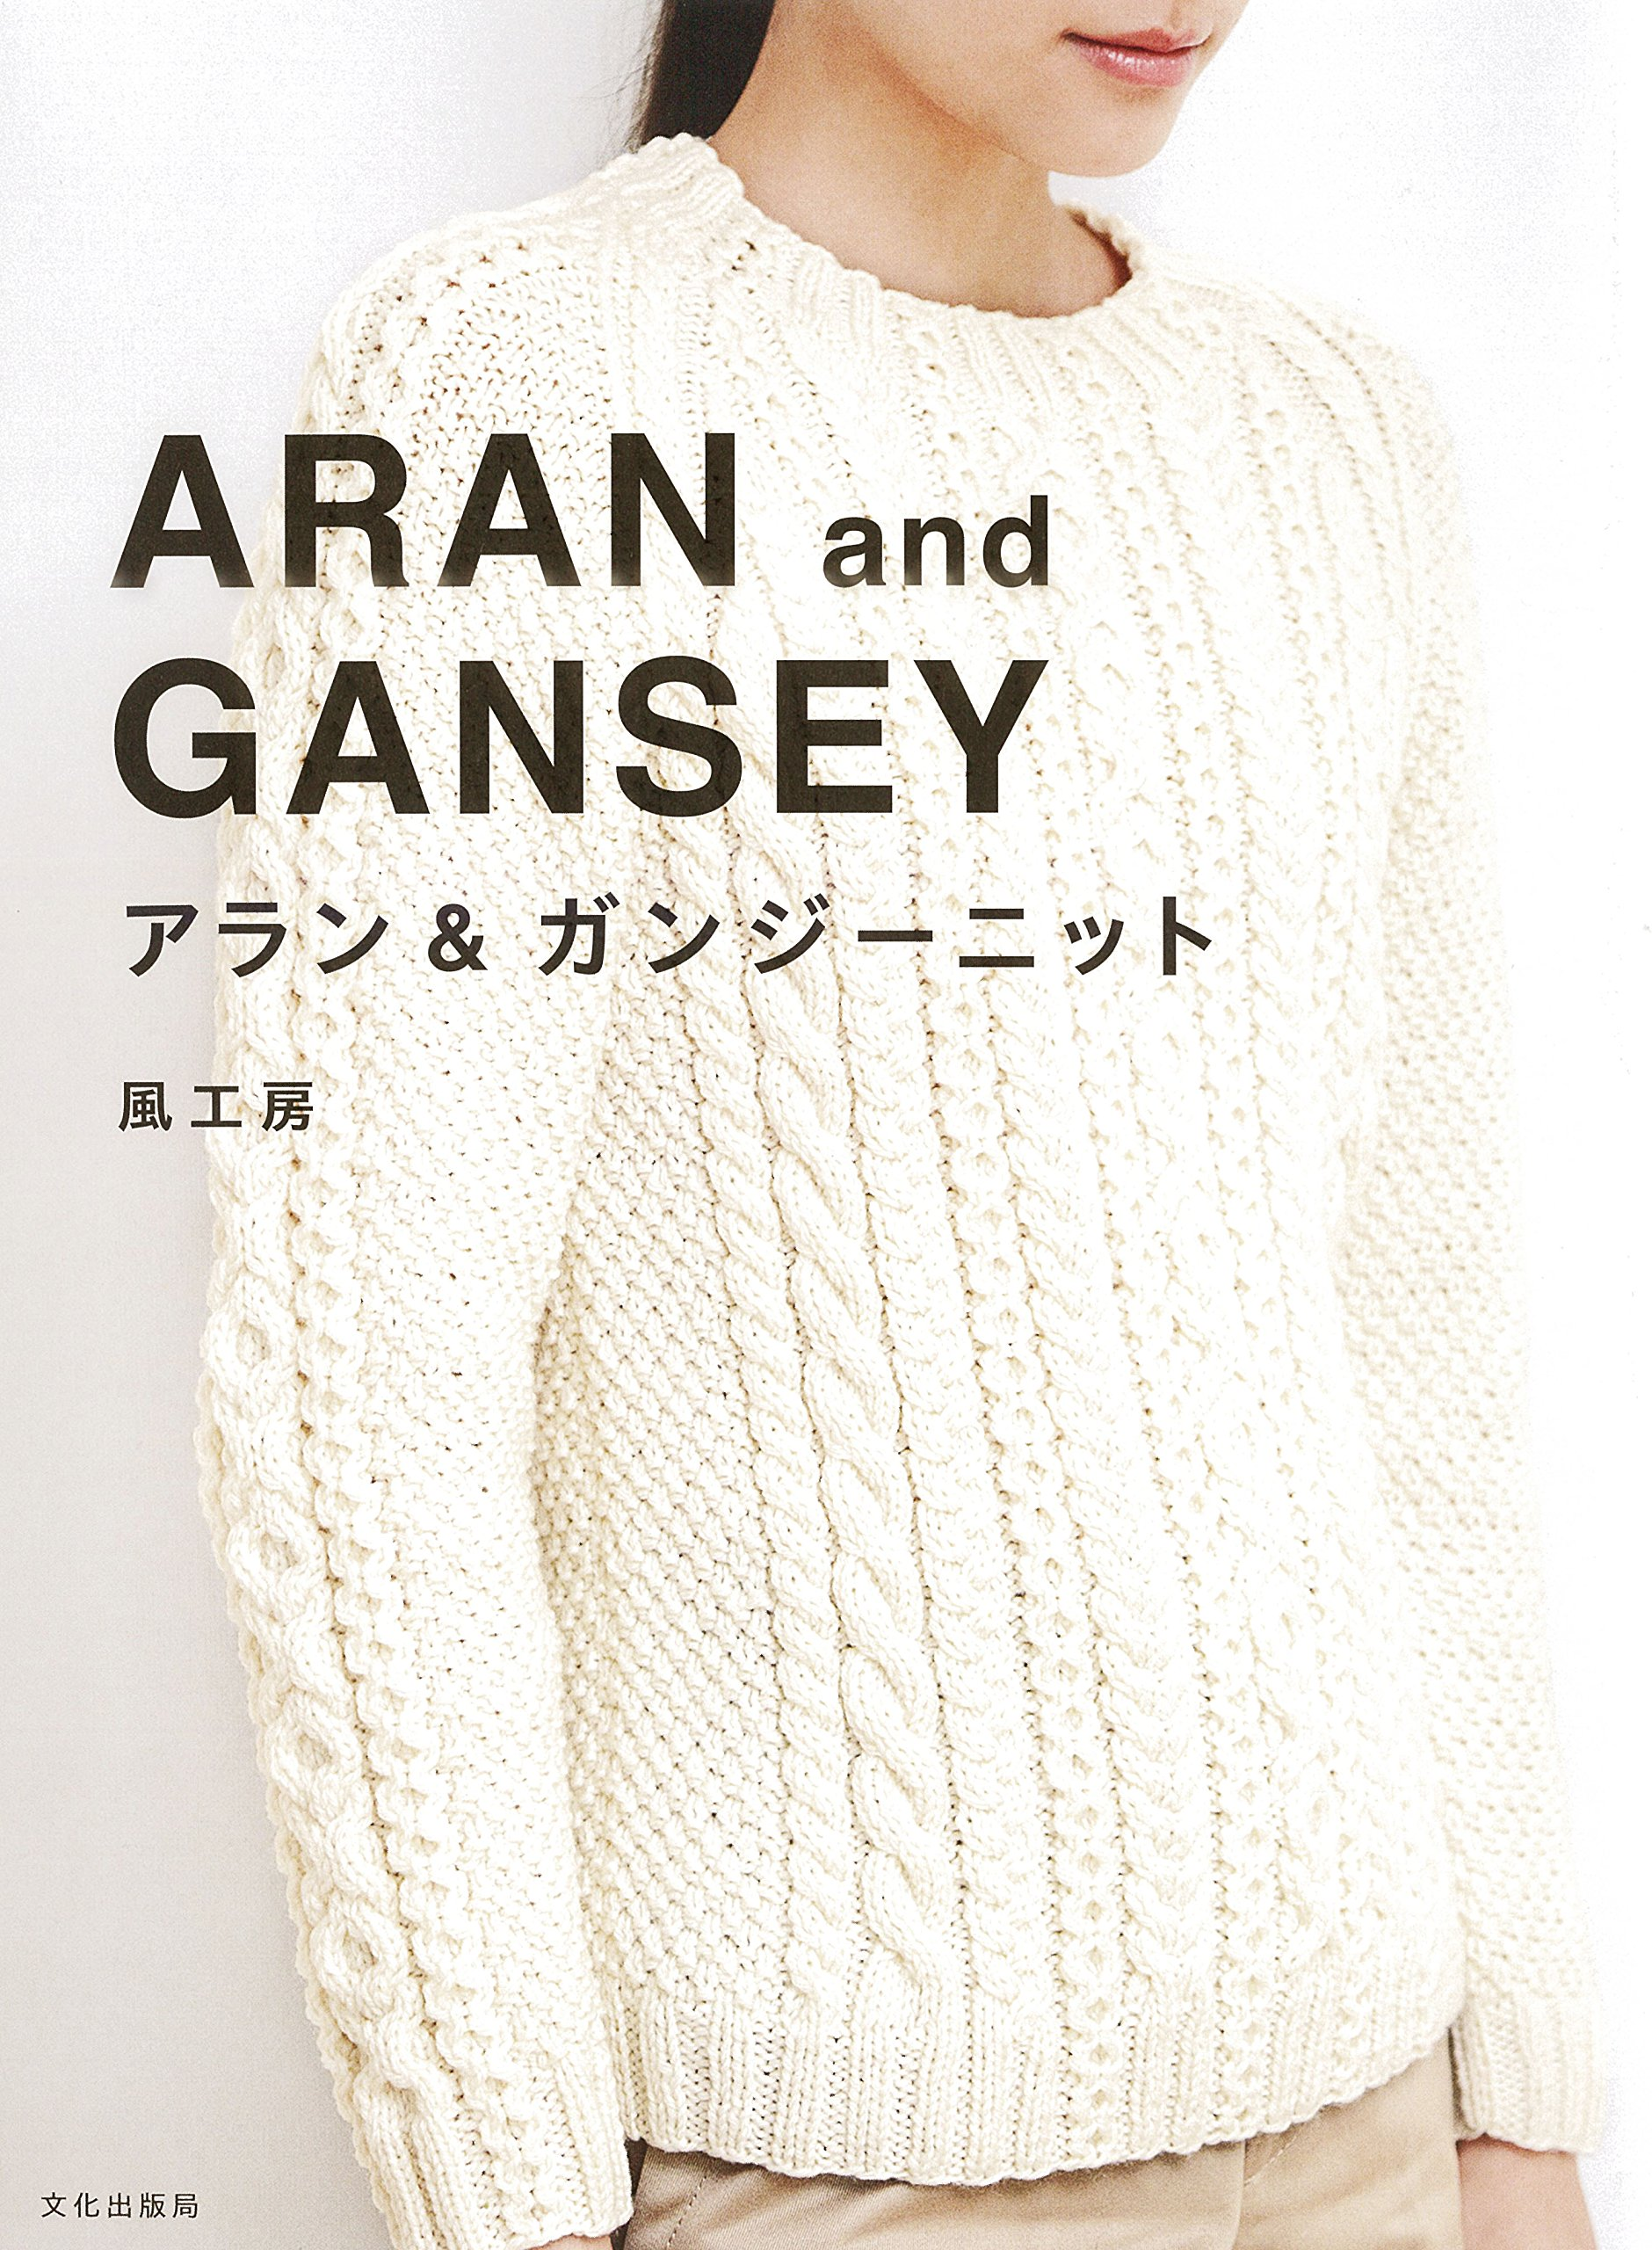 Alan and Gansey knit book